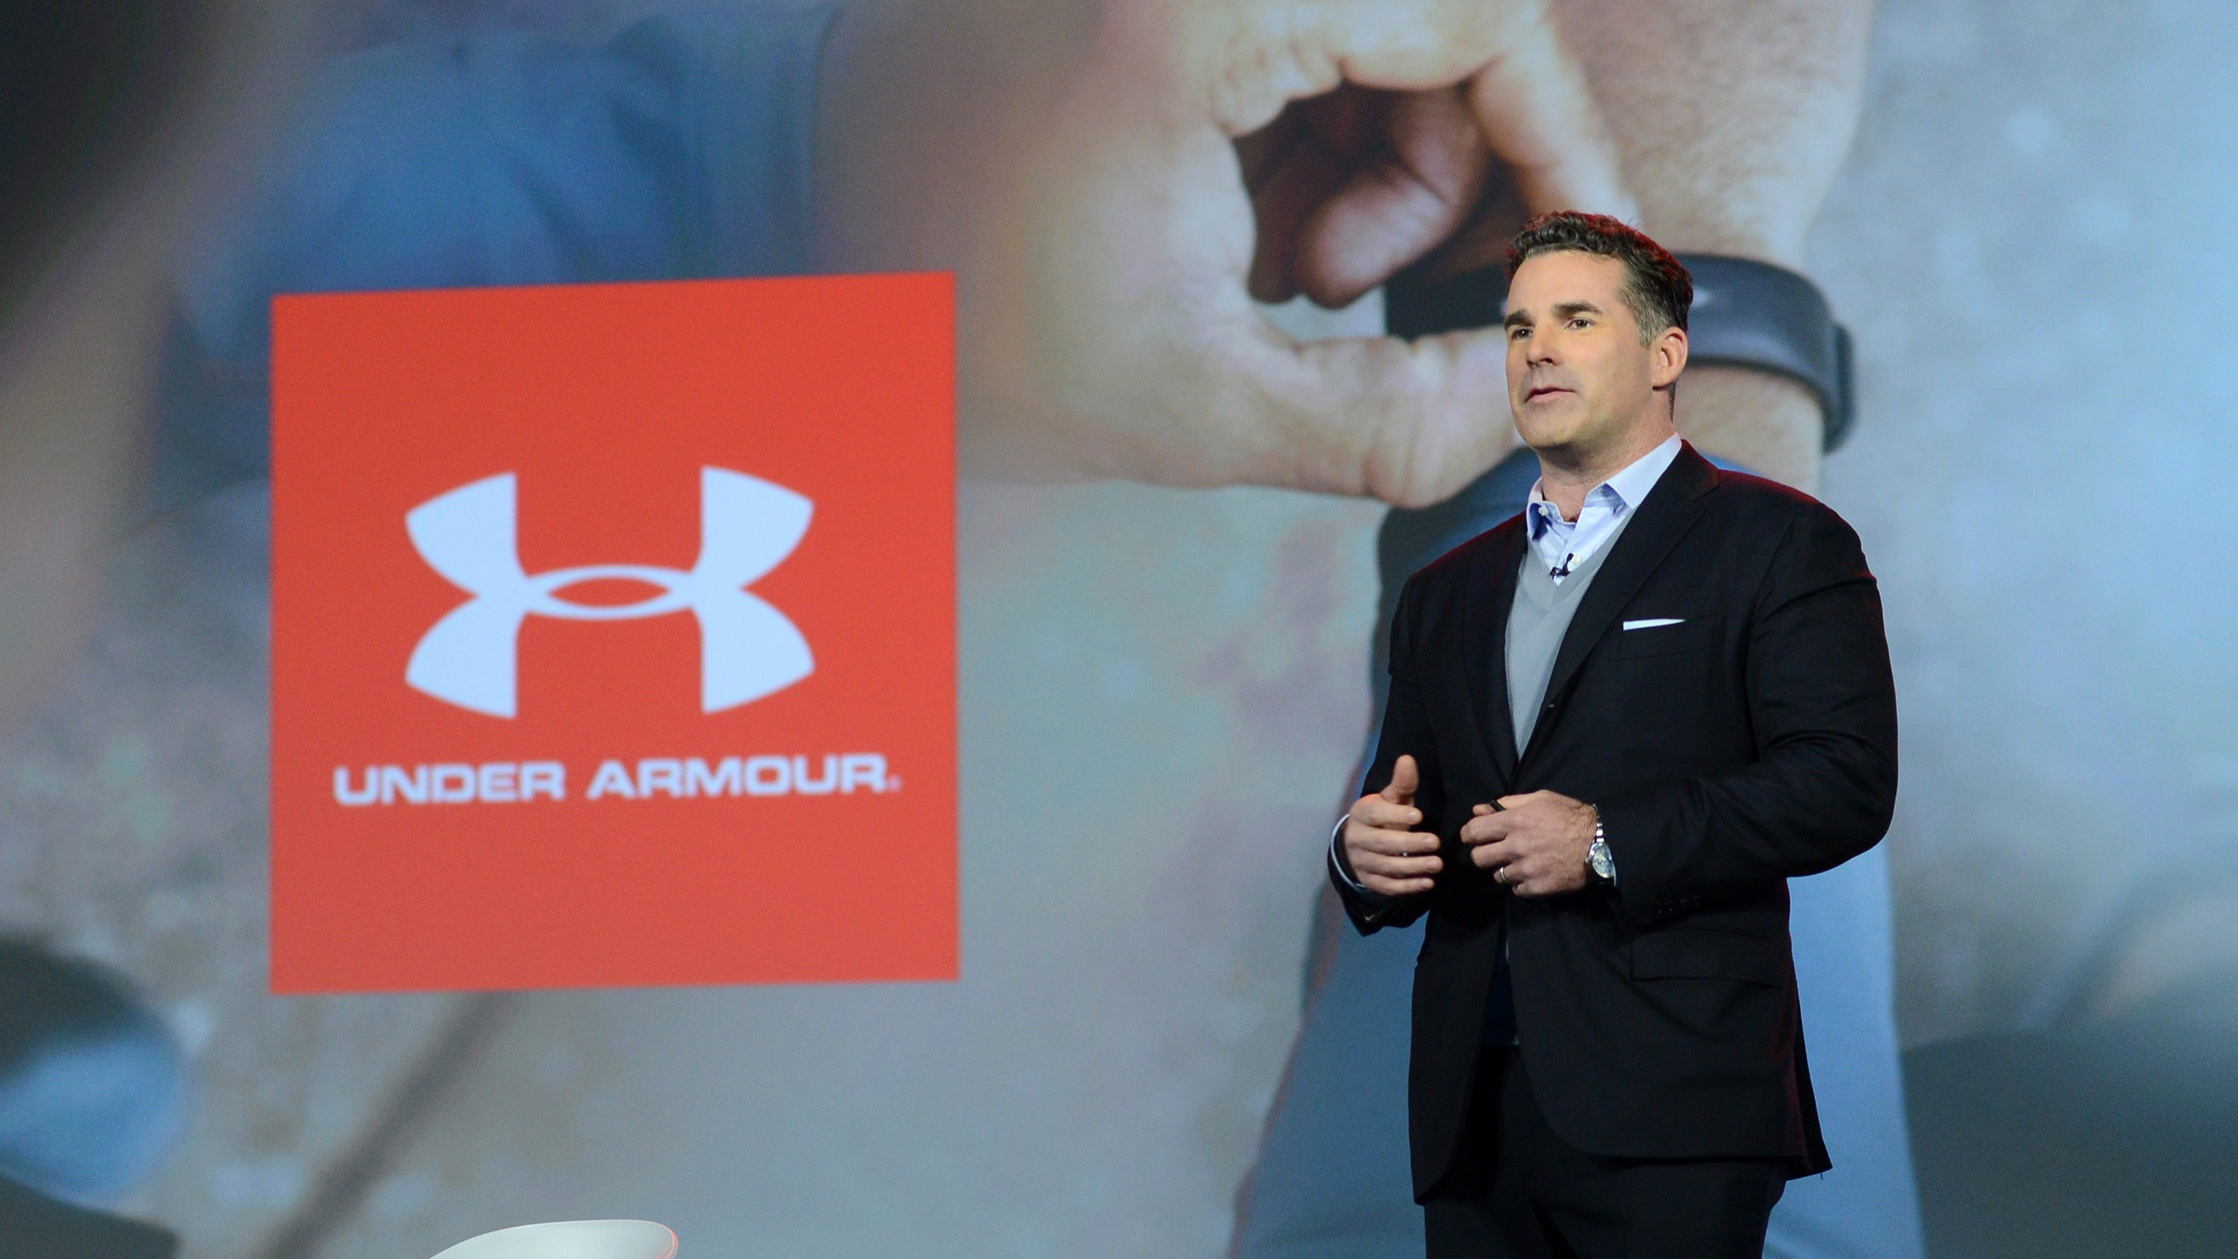 "In this photo taken by Feature Photo Service for IBM: At CES, IBM Chairman and CEO Ginni Rometty, and Kevin Plank, Founder and CEO, Under Armour, announced a new ""cognitive coaching"" system, powered by Watson, that will transform personal health and fitness, Weds., January 6, 2016 in Las Vegas, Nev. The system will serve as a personal health consultant, fitness trainer and assistant by providing athletes with coaching around sleep, fitness, activity and nutrition. It will initially be available within UA Record (TM) available now on the App Store. (Alan Rosenberg/Feature Photo Service for IBM)"